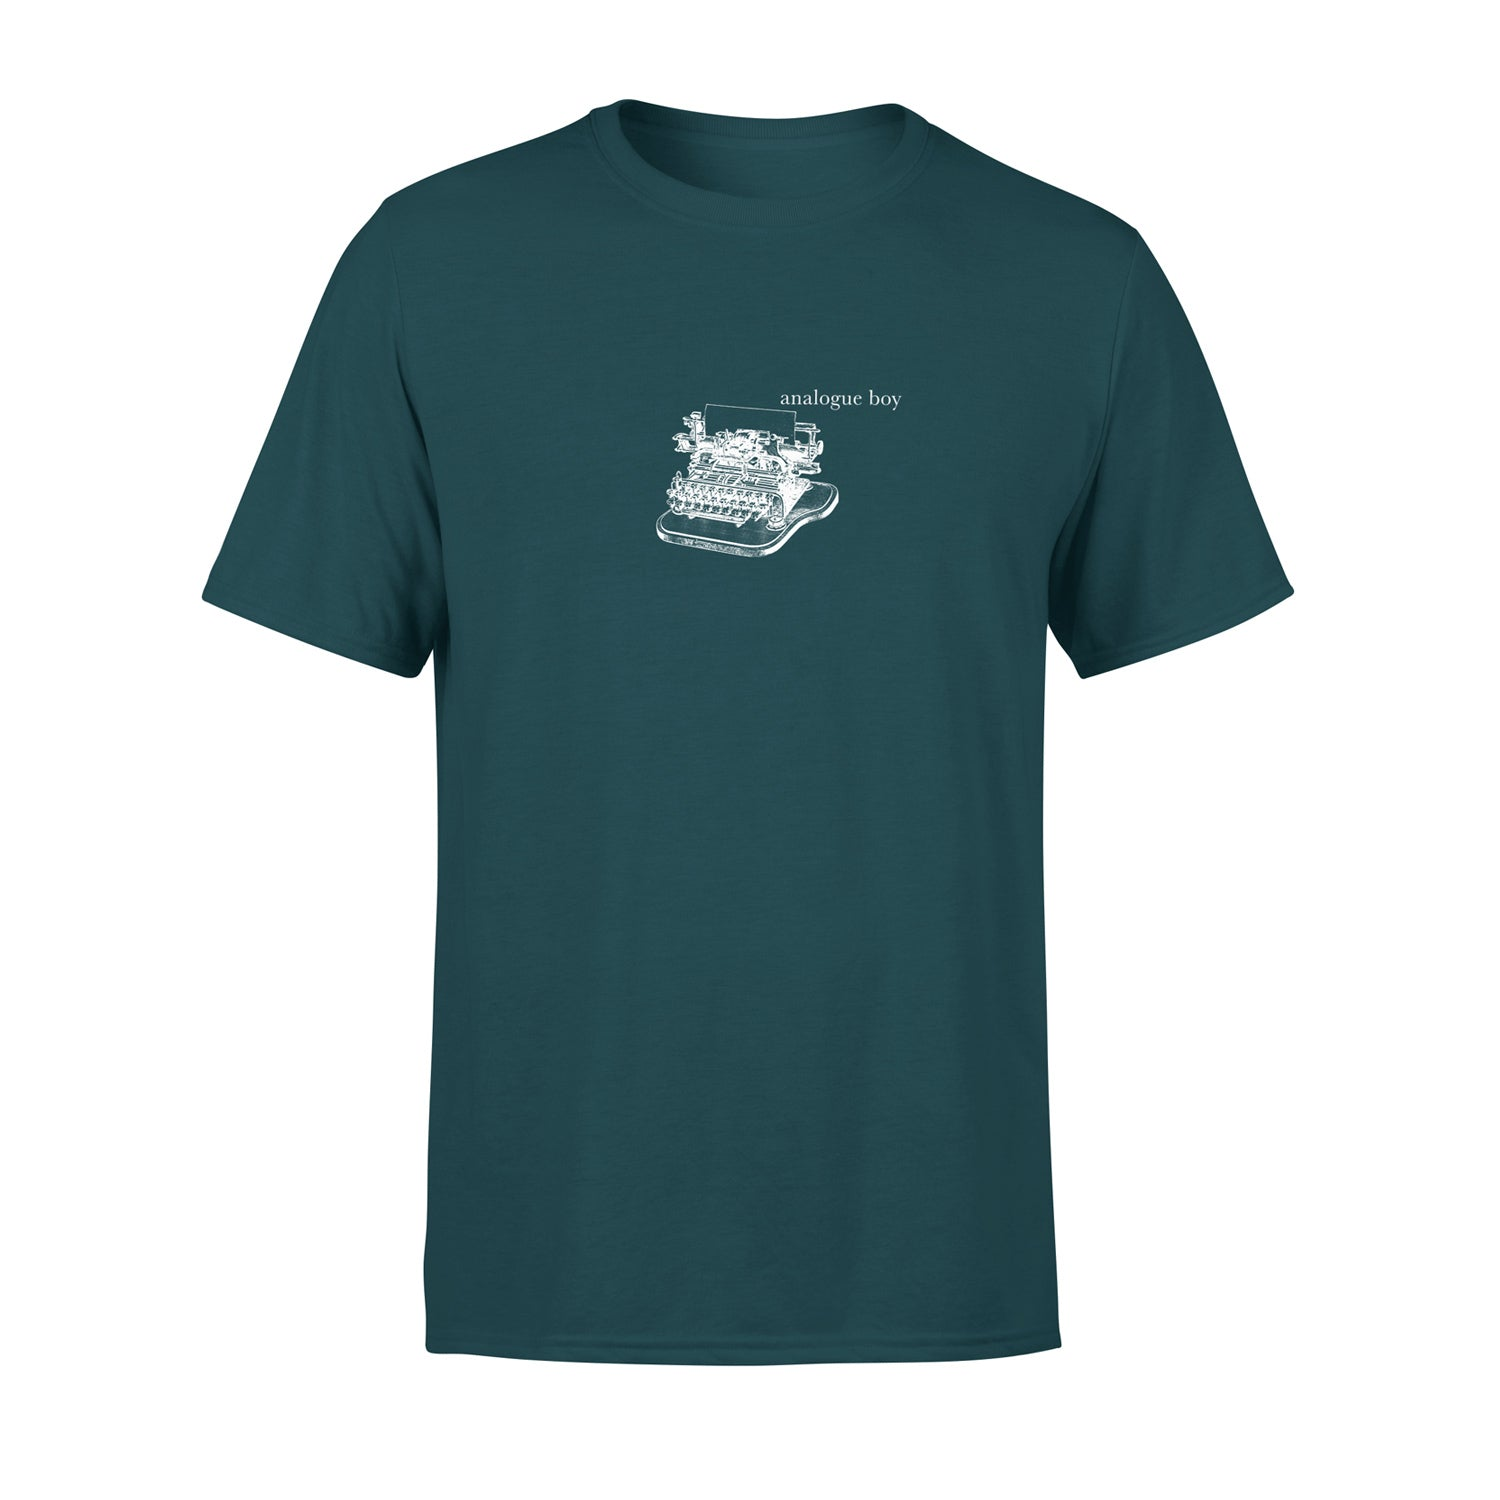 cool mens t shirt in blue-green with vintage illustration of typewriter and the words 'analogue boy' typed next to it